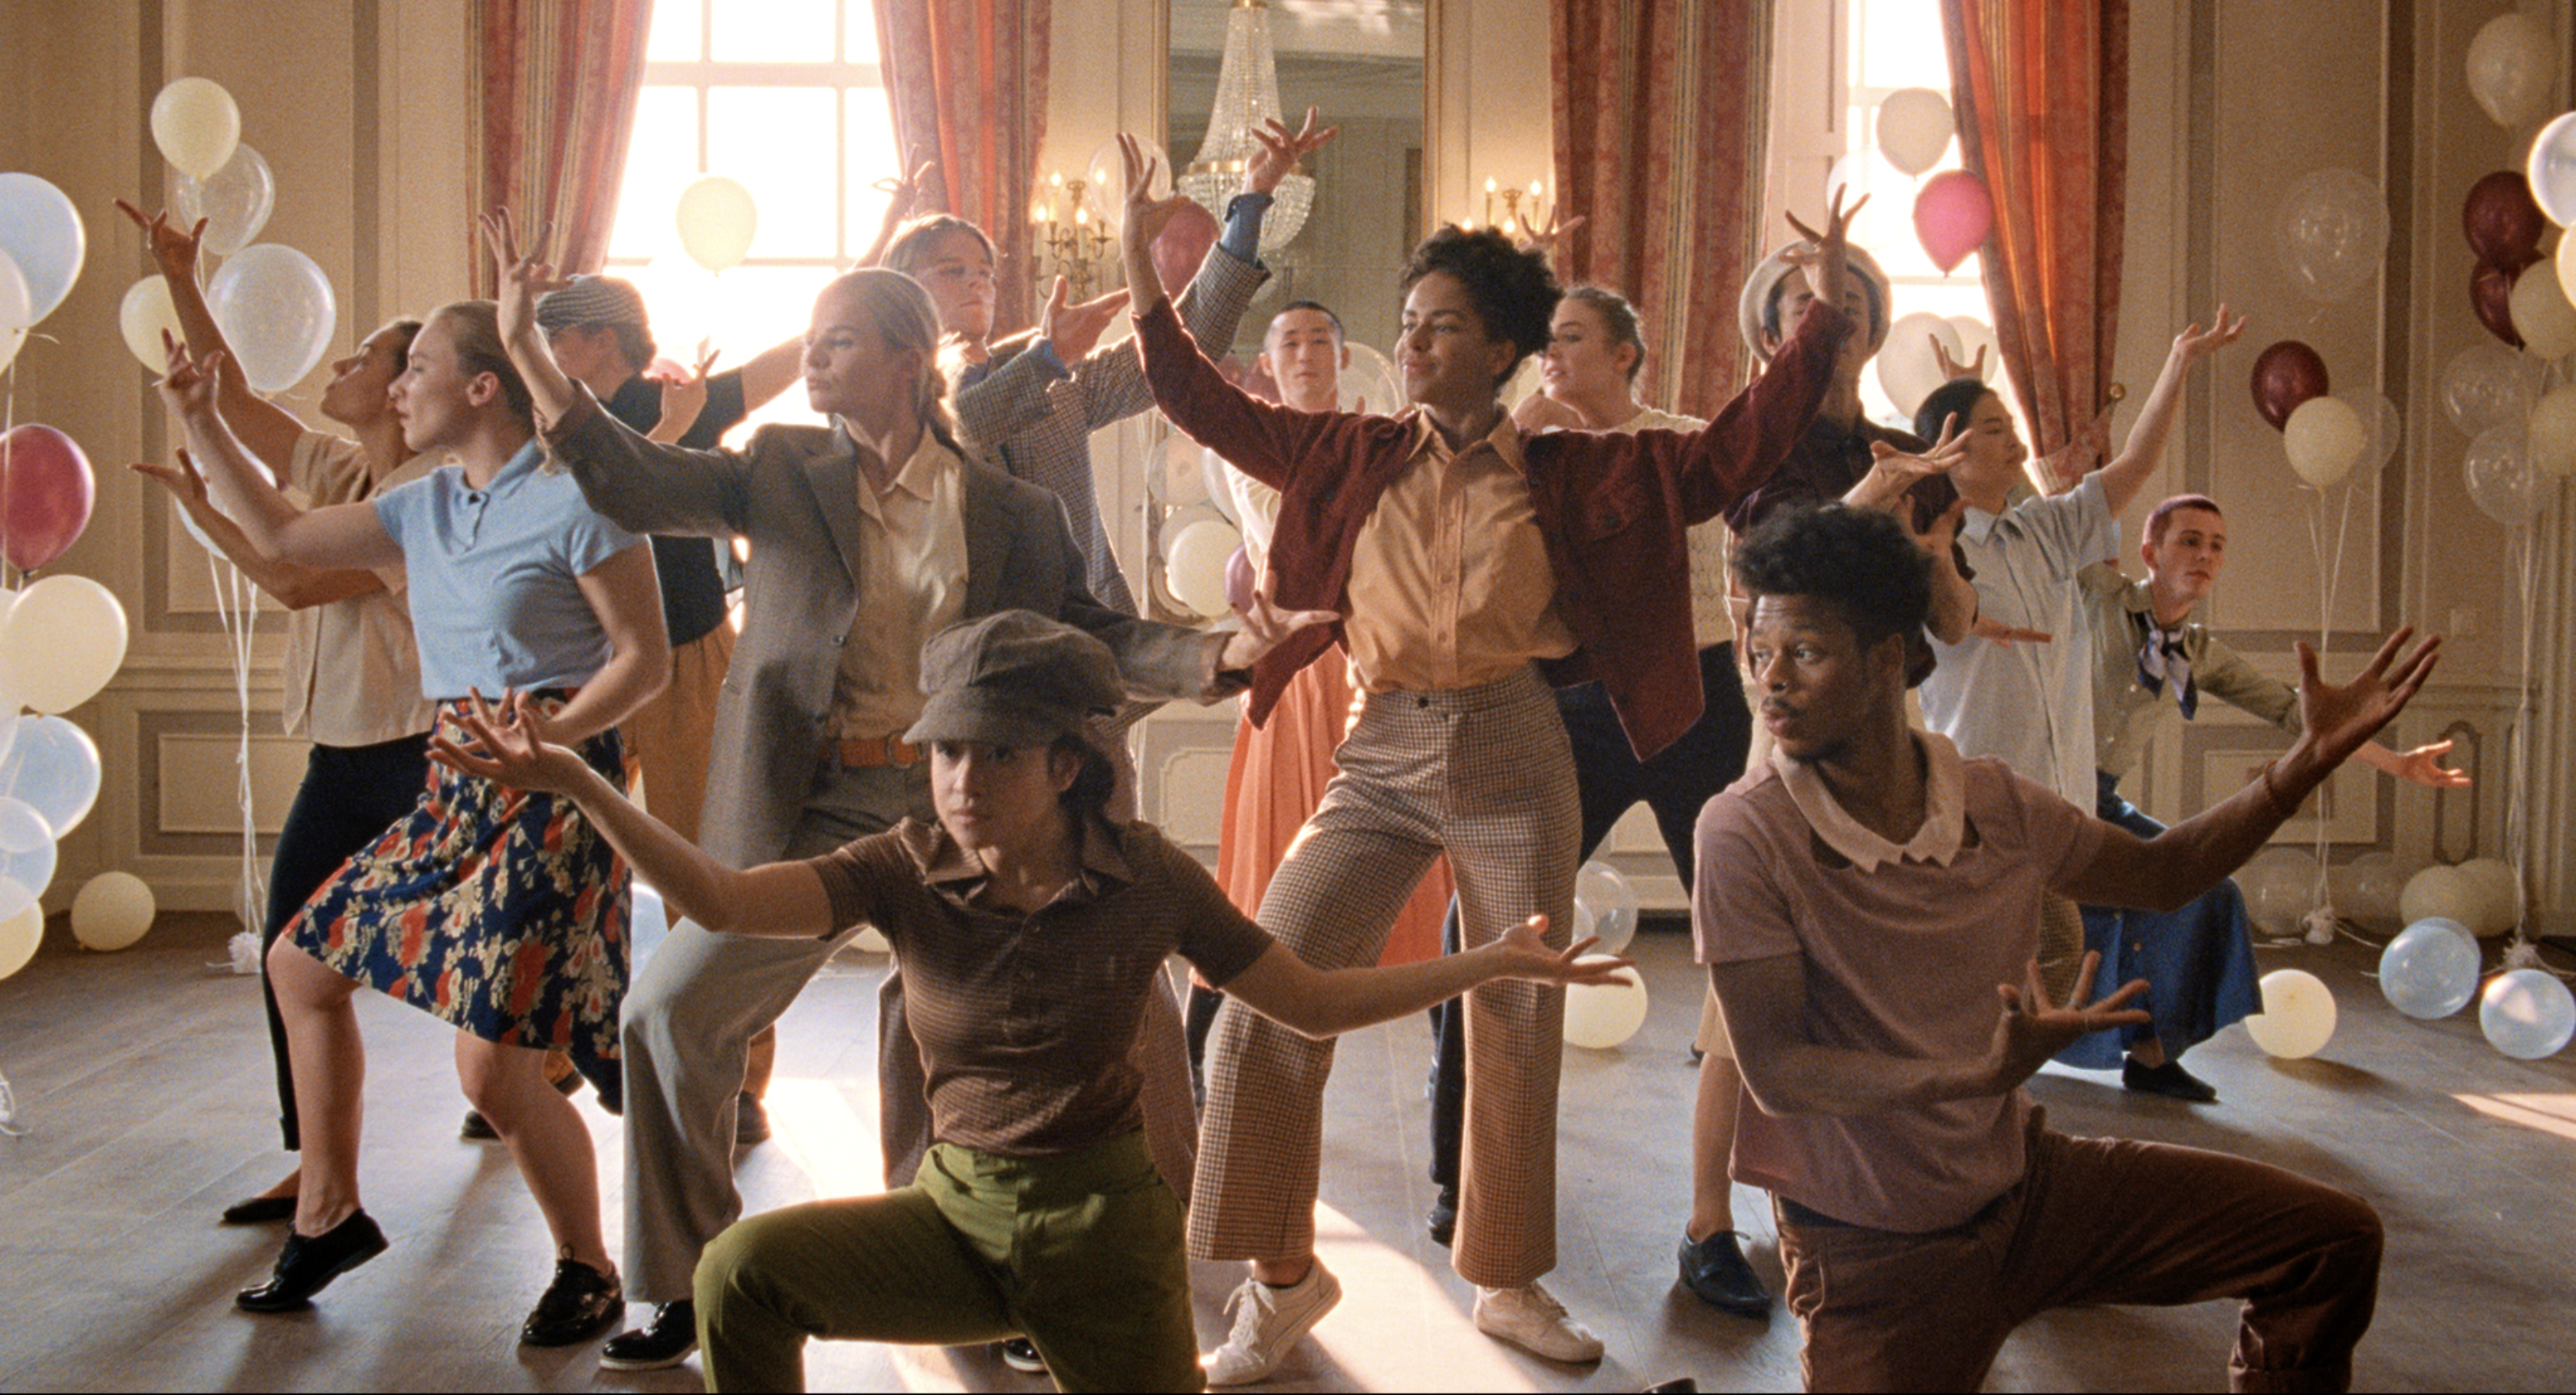 Still from the commercial For You. A group of dancers are doing a choreography in fancy room.